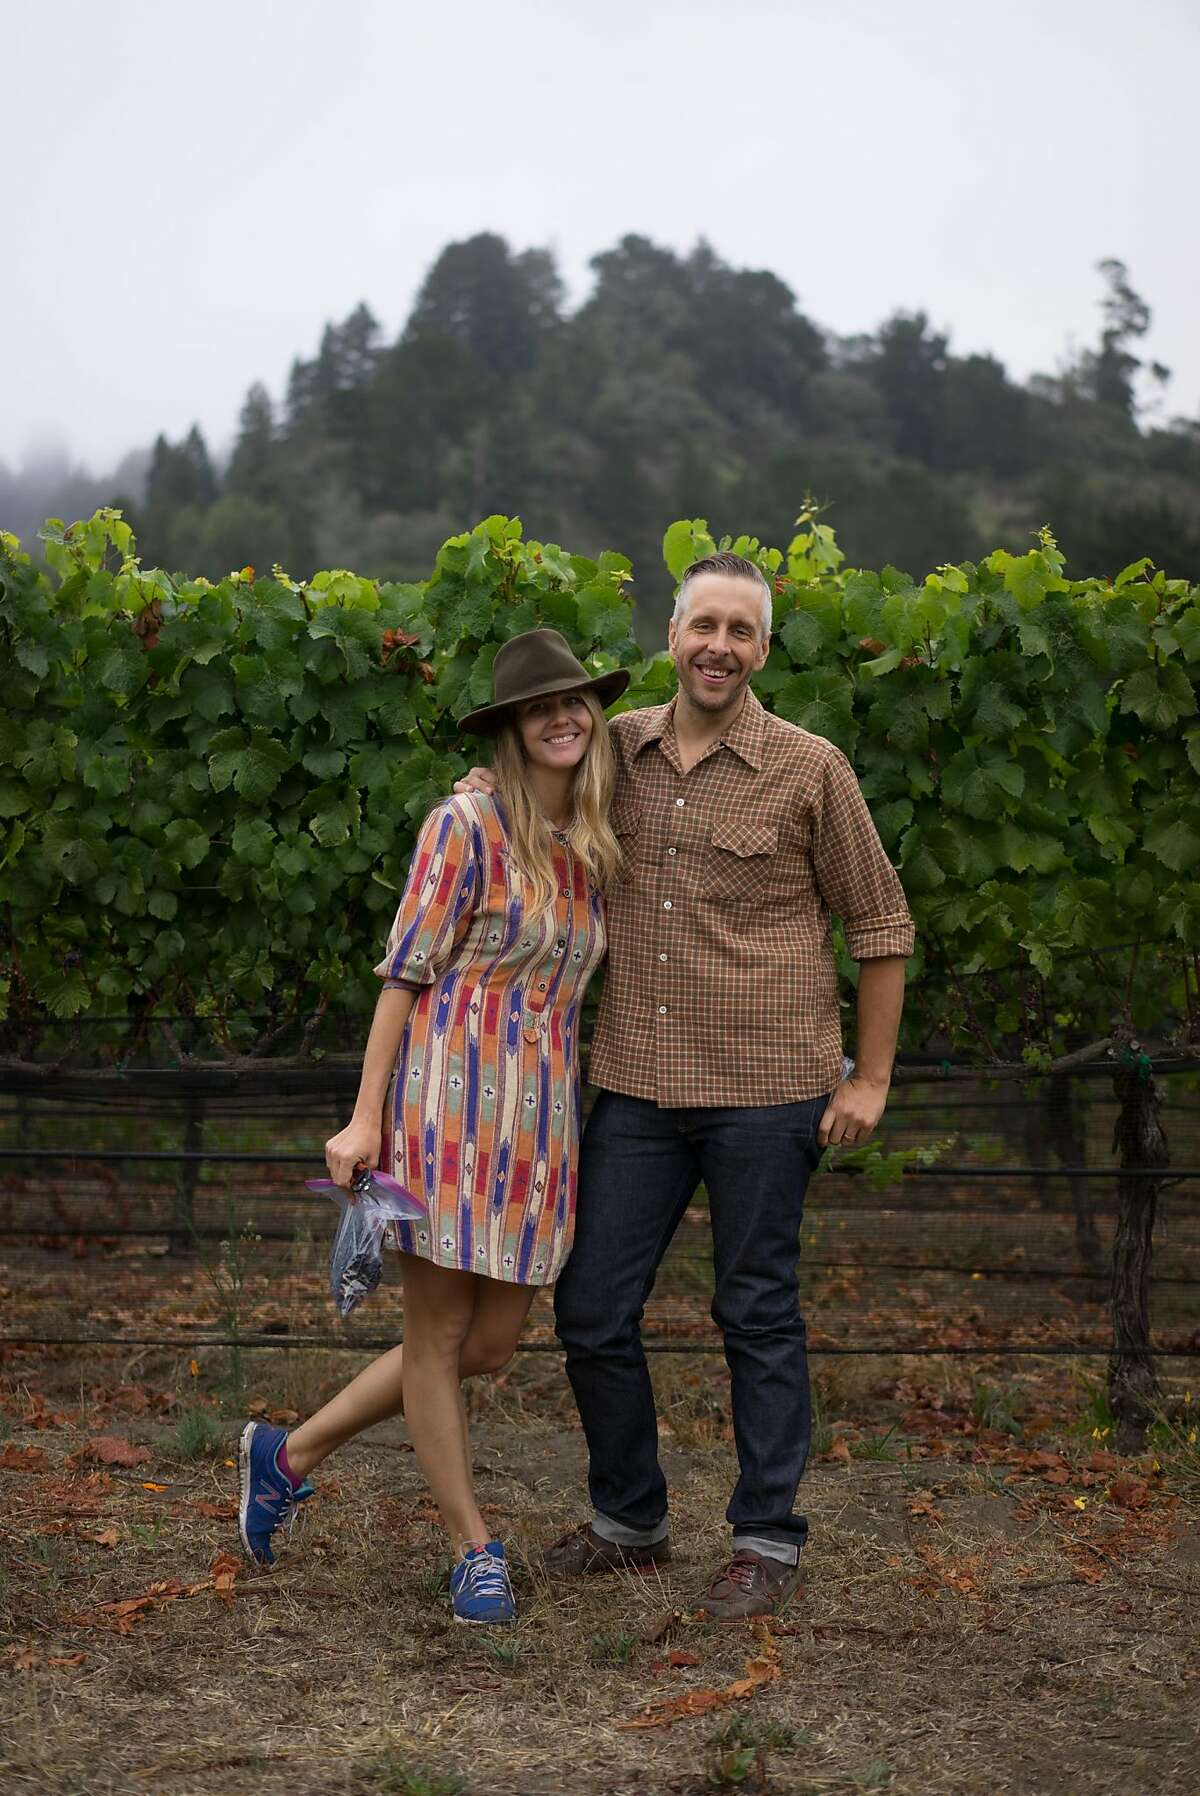 Emily Virgil, left, and Drew Huffine pose for a photo in Aptos, Calif. on Saturday, Aug. 8, 2015. Virgil and Huffine both have daytime jobs but hope to make winemaking their full-time business.